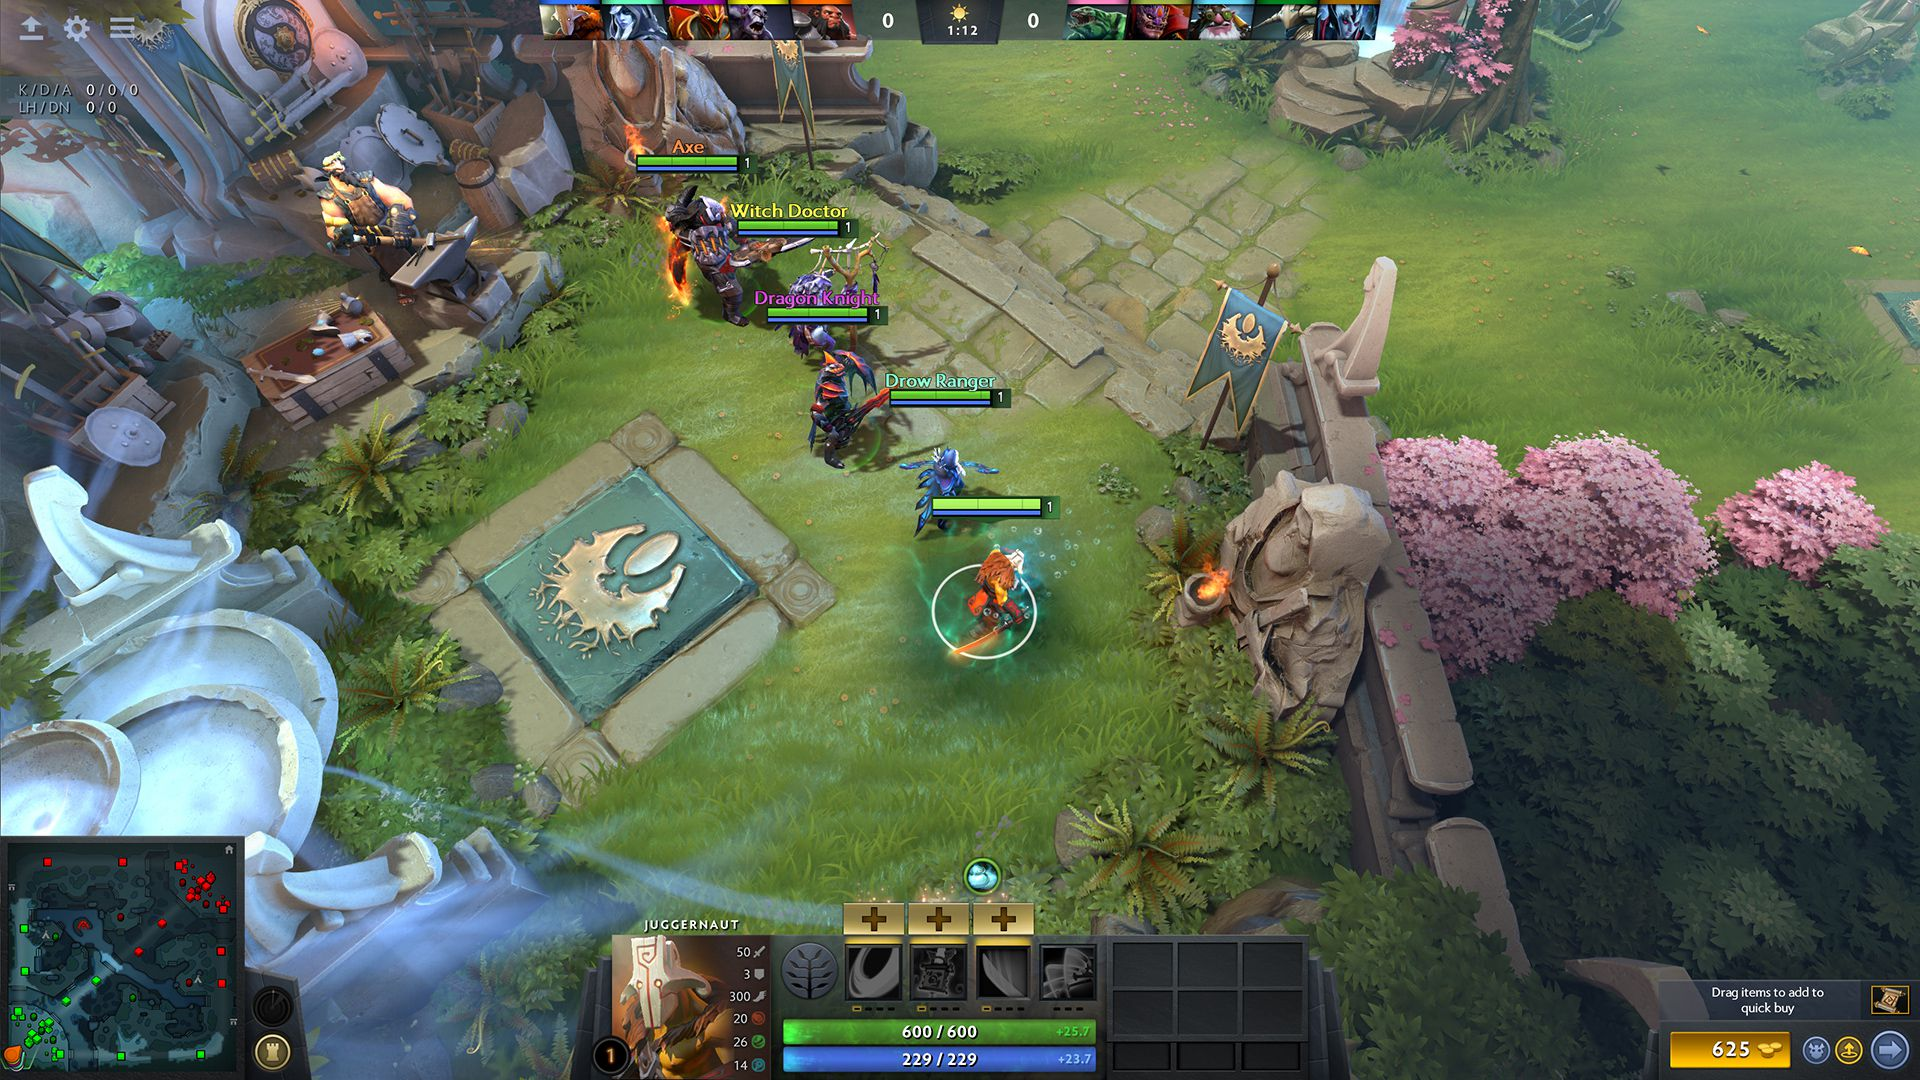 Cheat Codes for Dota 2 on PC